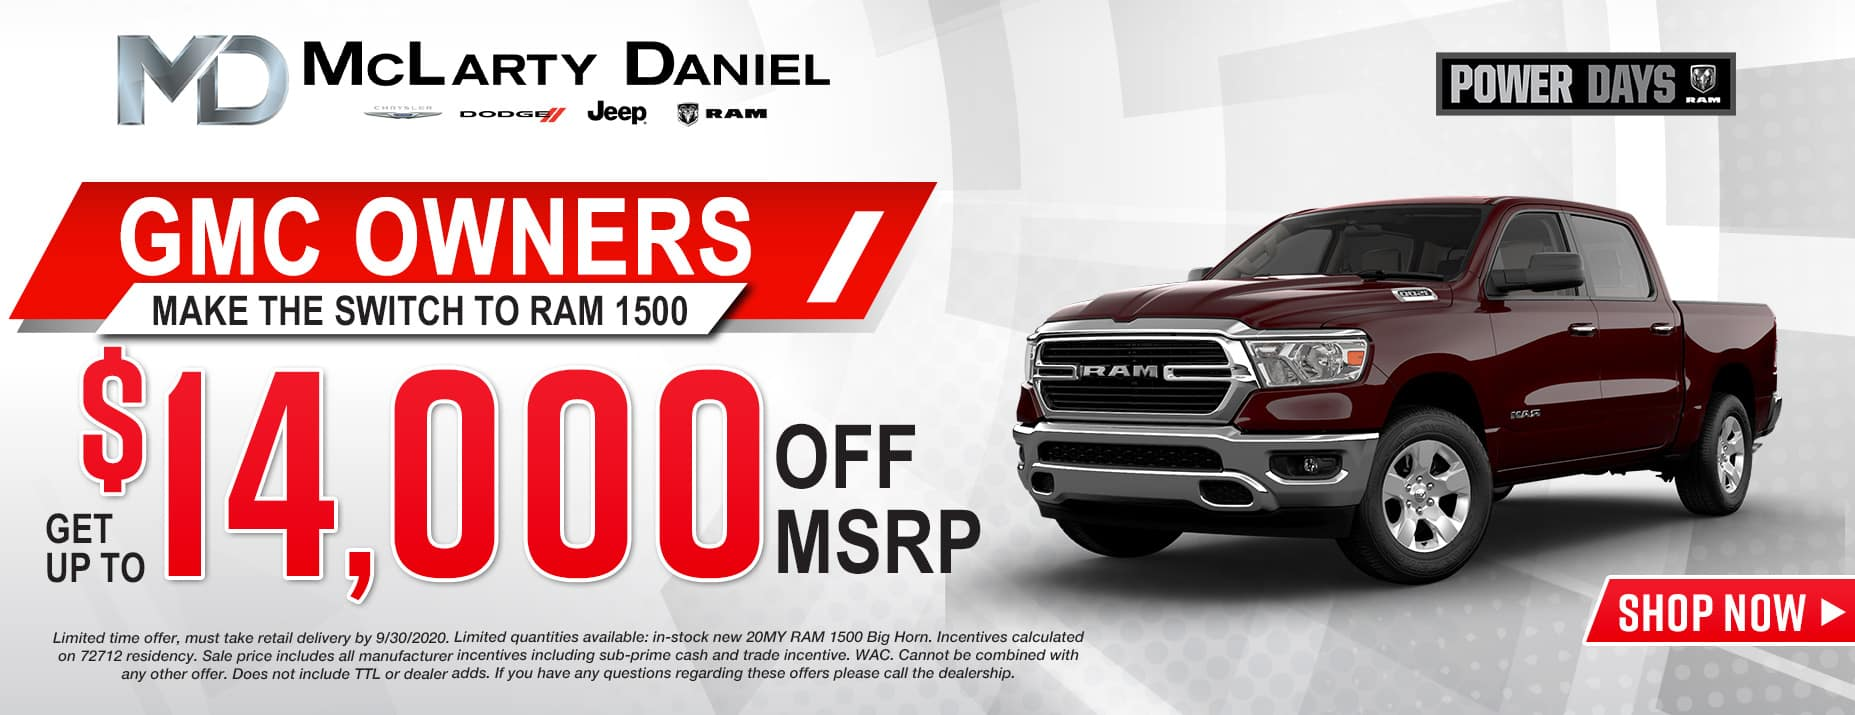 GMC OWNERS: MAKE THE SWITCH TO RAM 1500 AND GET UP TO $14,000 OFF RAM 1500 BIG HORN!